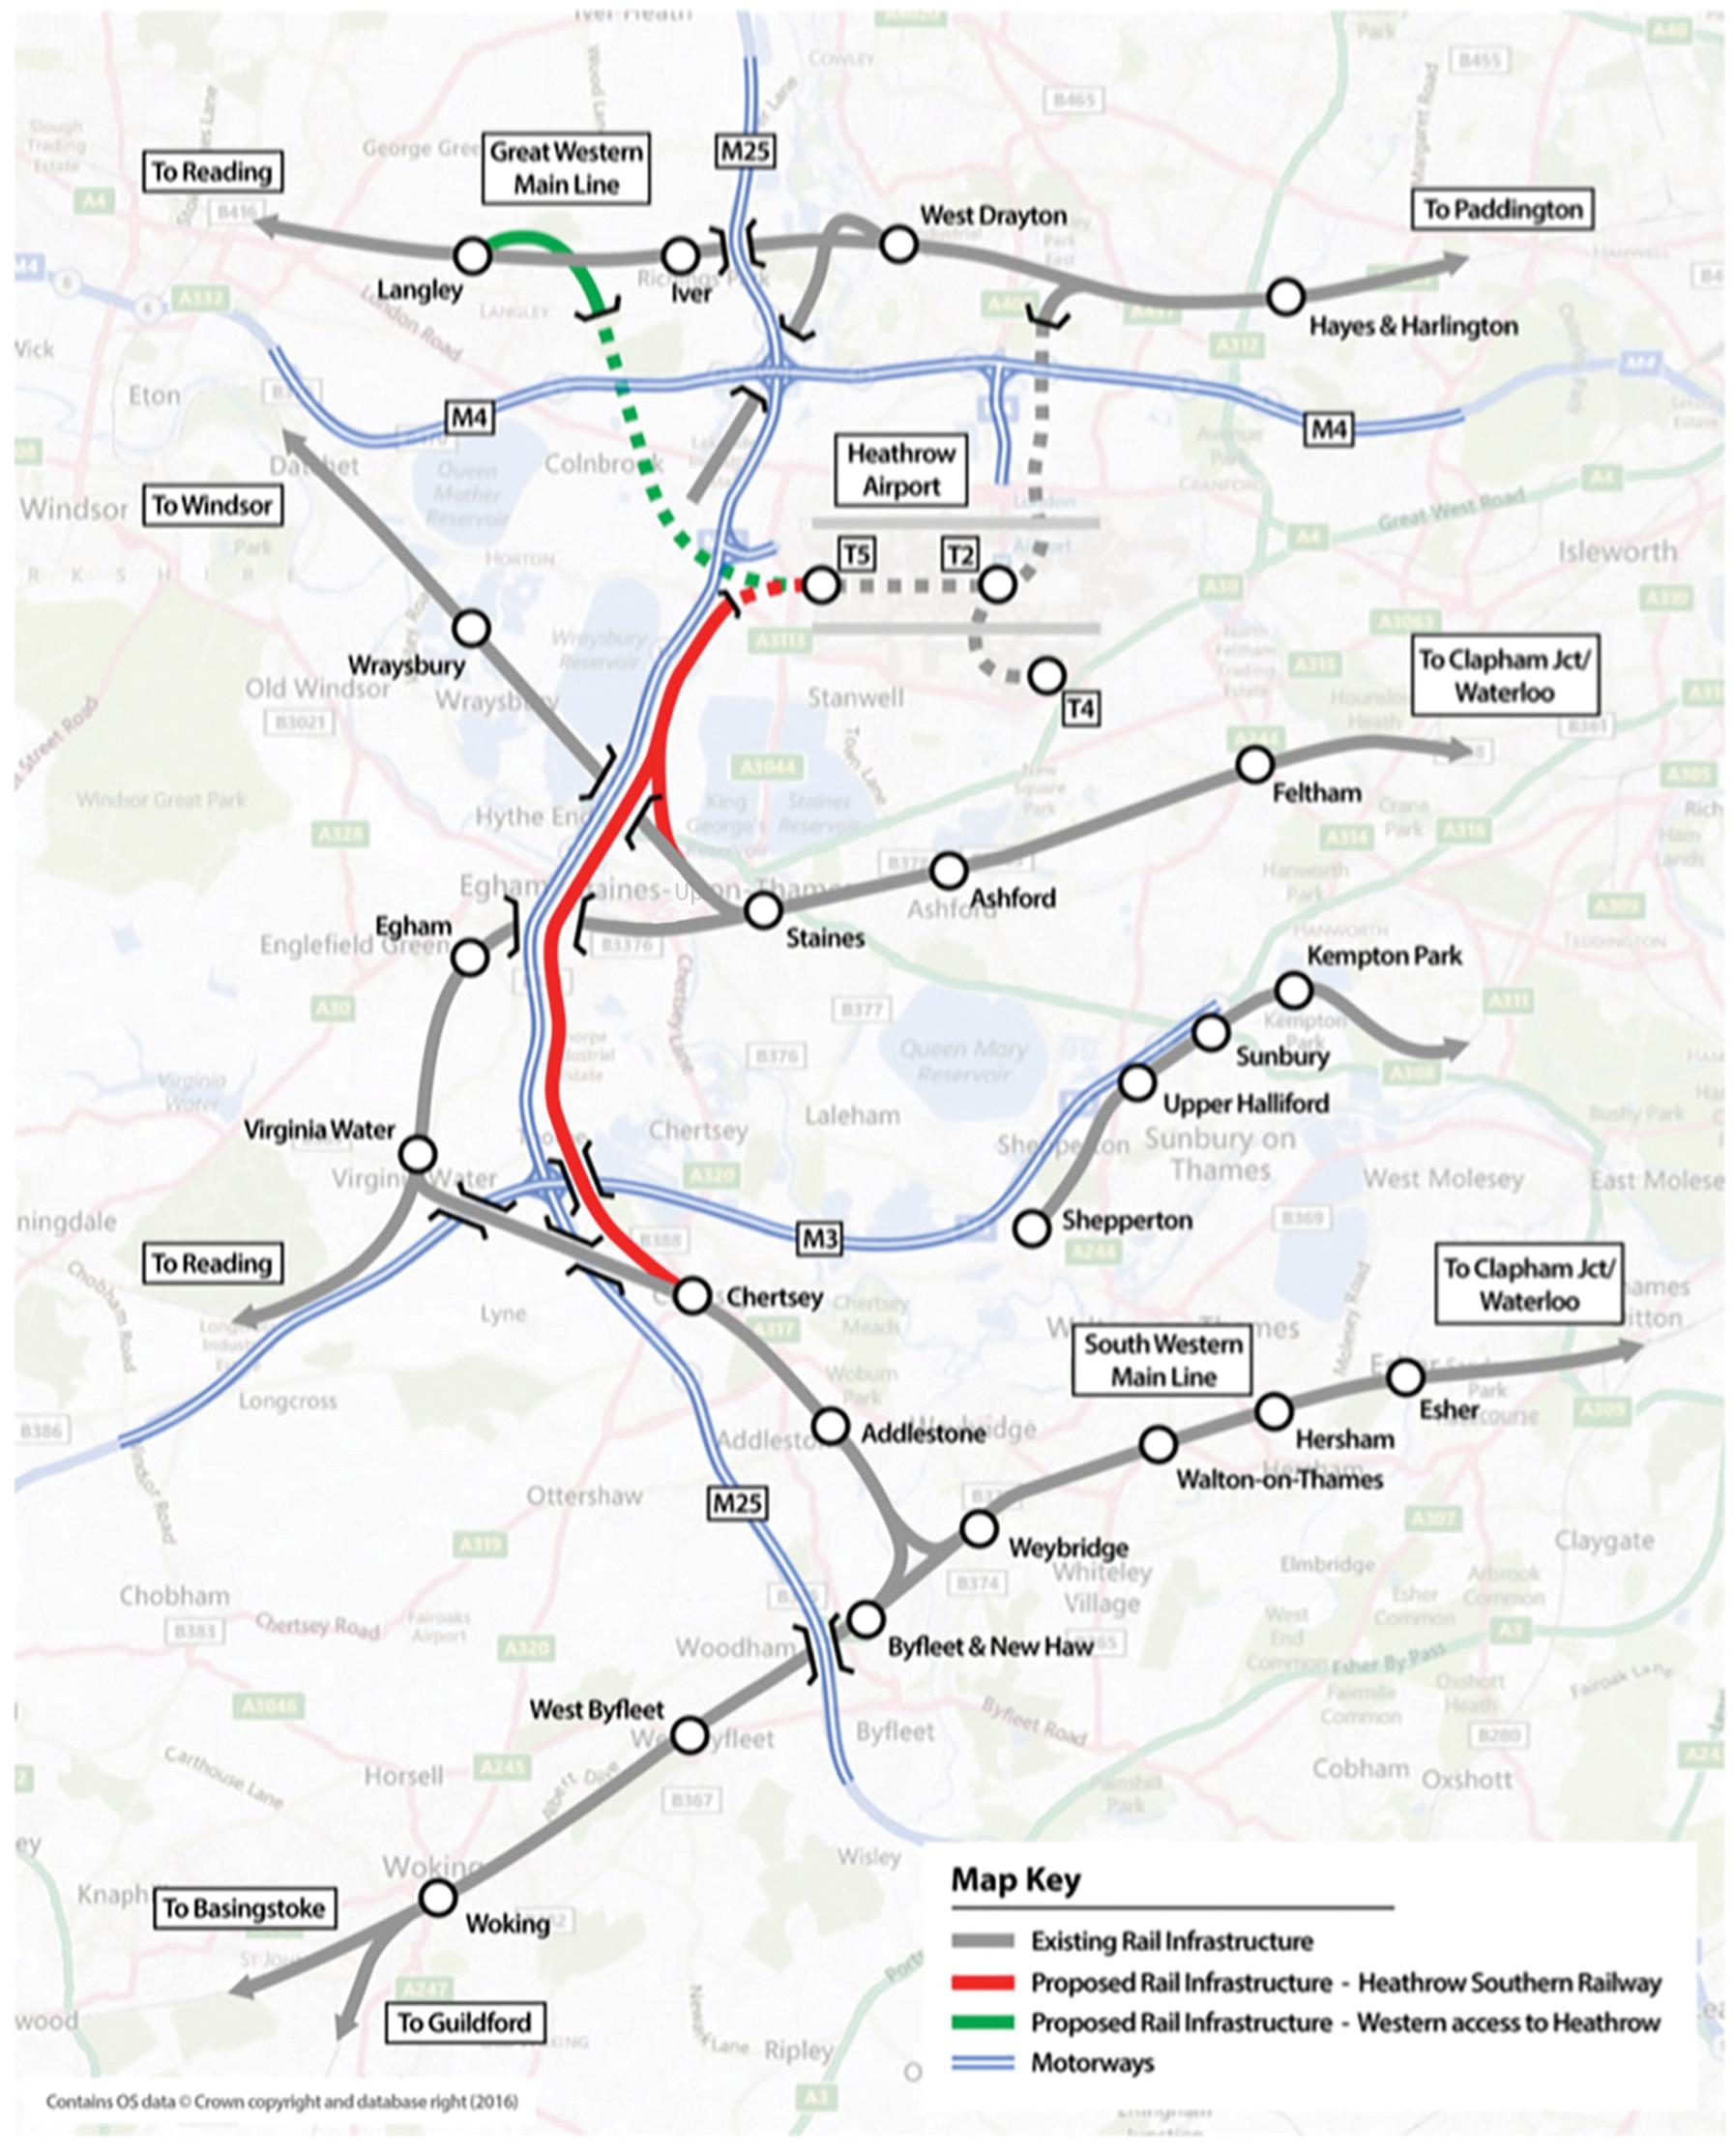 The Southern rail access proposed by Heathrow Southern Railway Ltd in red